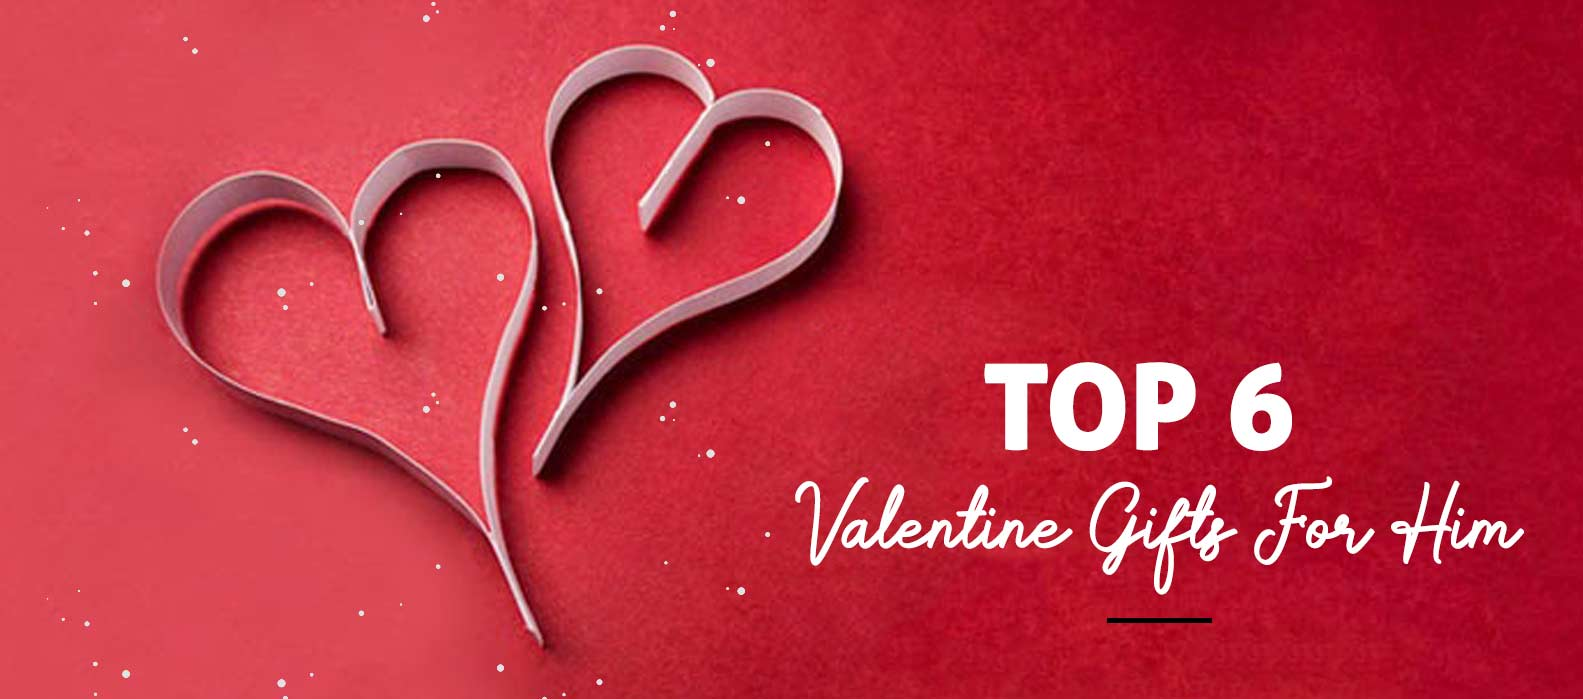 Top 6 Valentine Gifts For Him